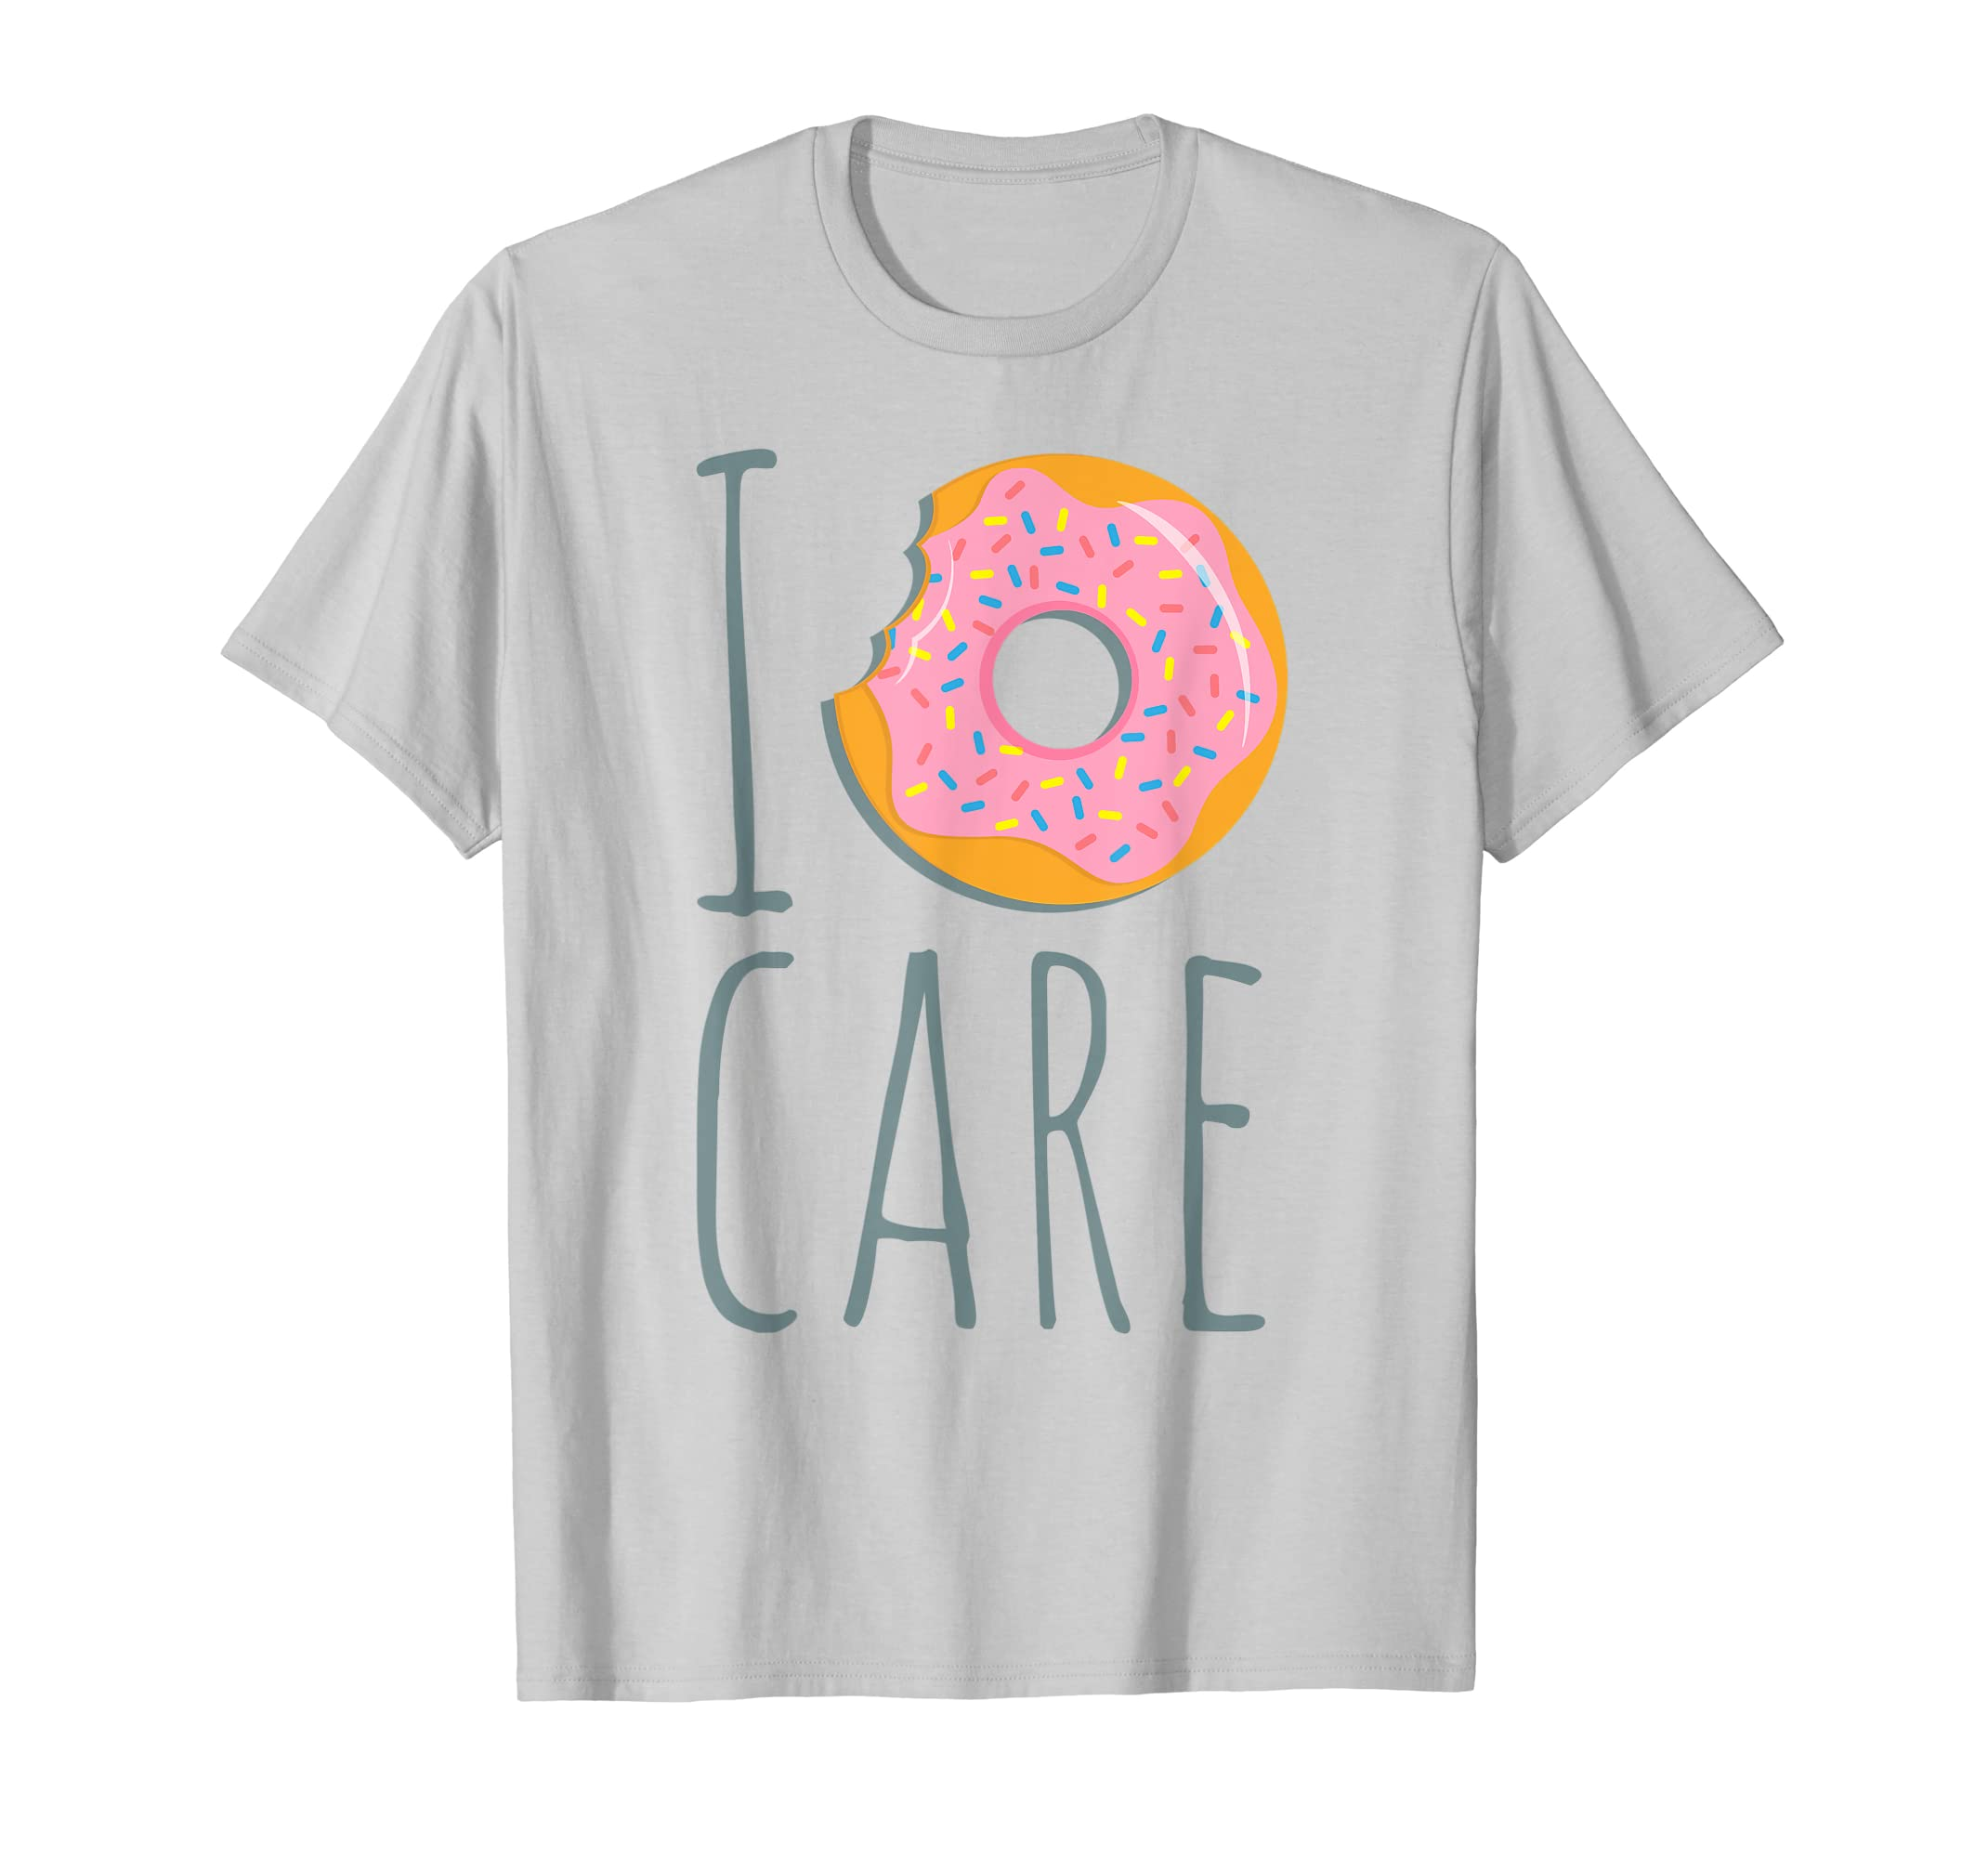 2ad229c1e88a Amazon.com  I Donut Care T-Shirt  Clothing